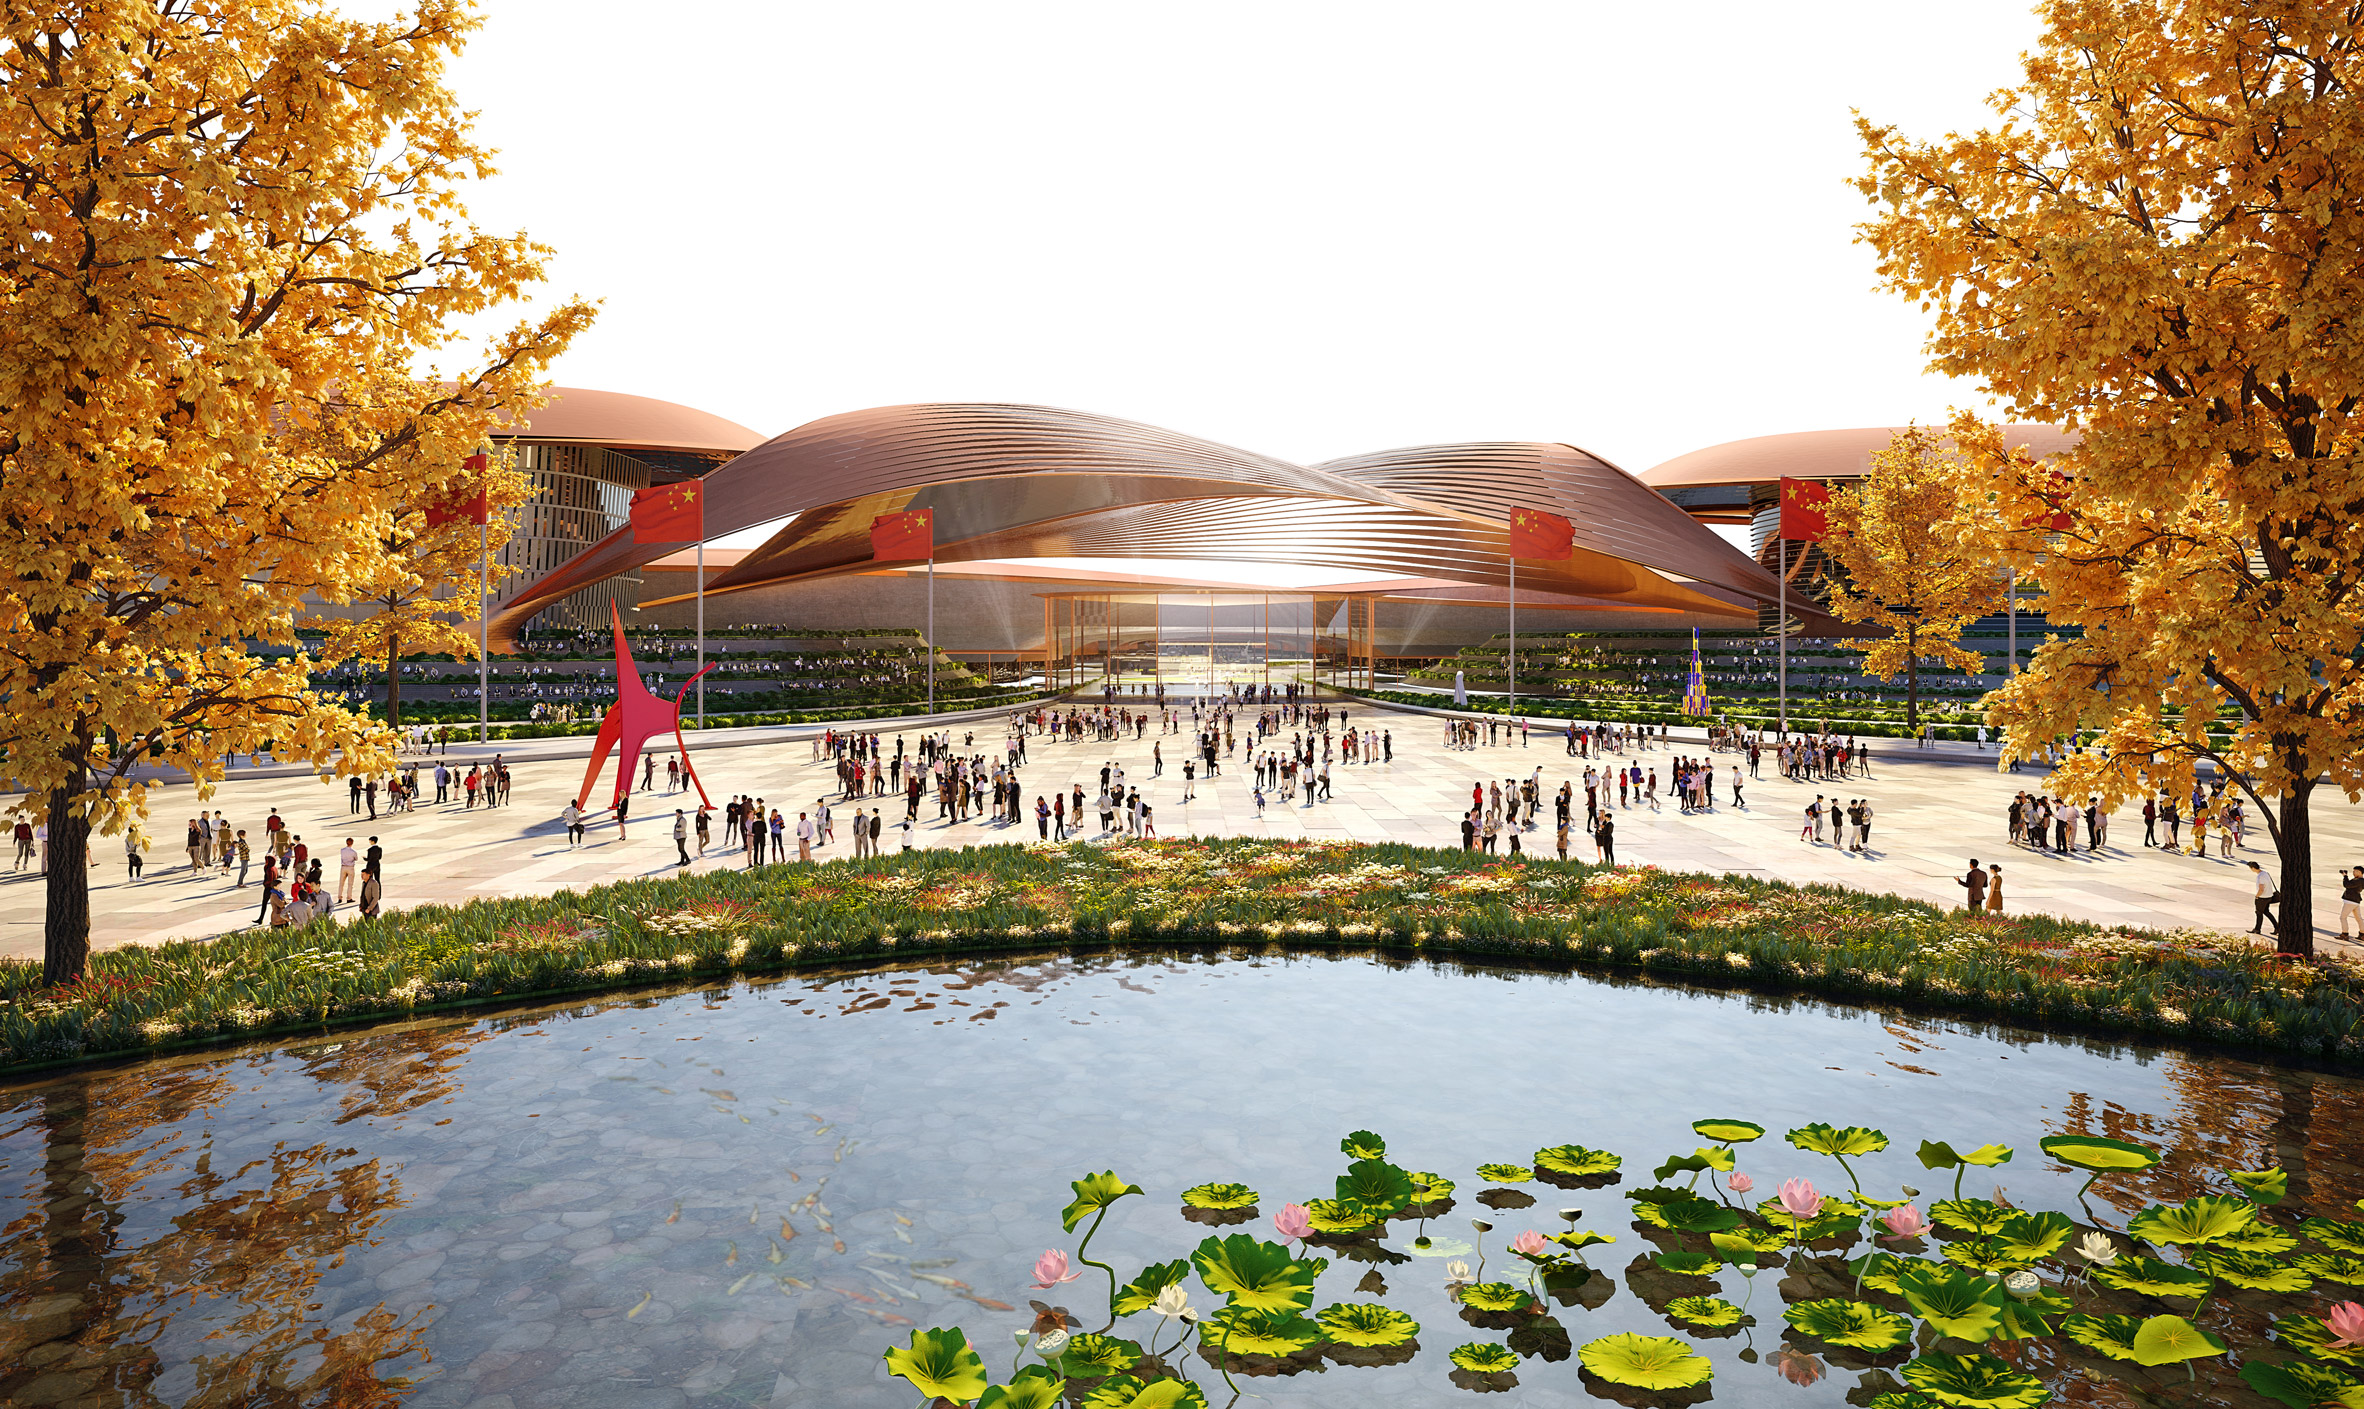 A copper-coloured exhibition centre by Zaha Hadid Architects